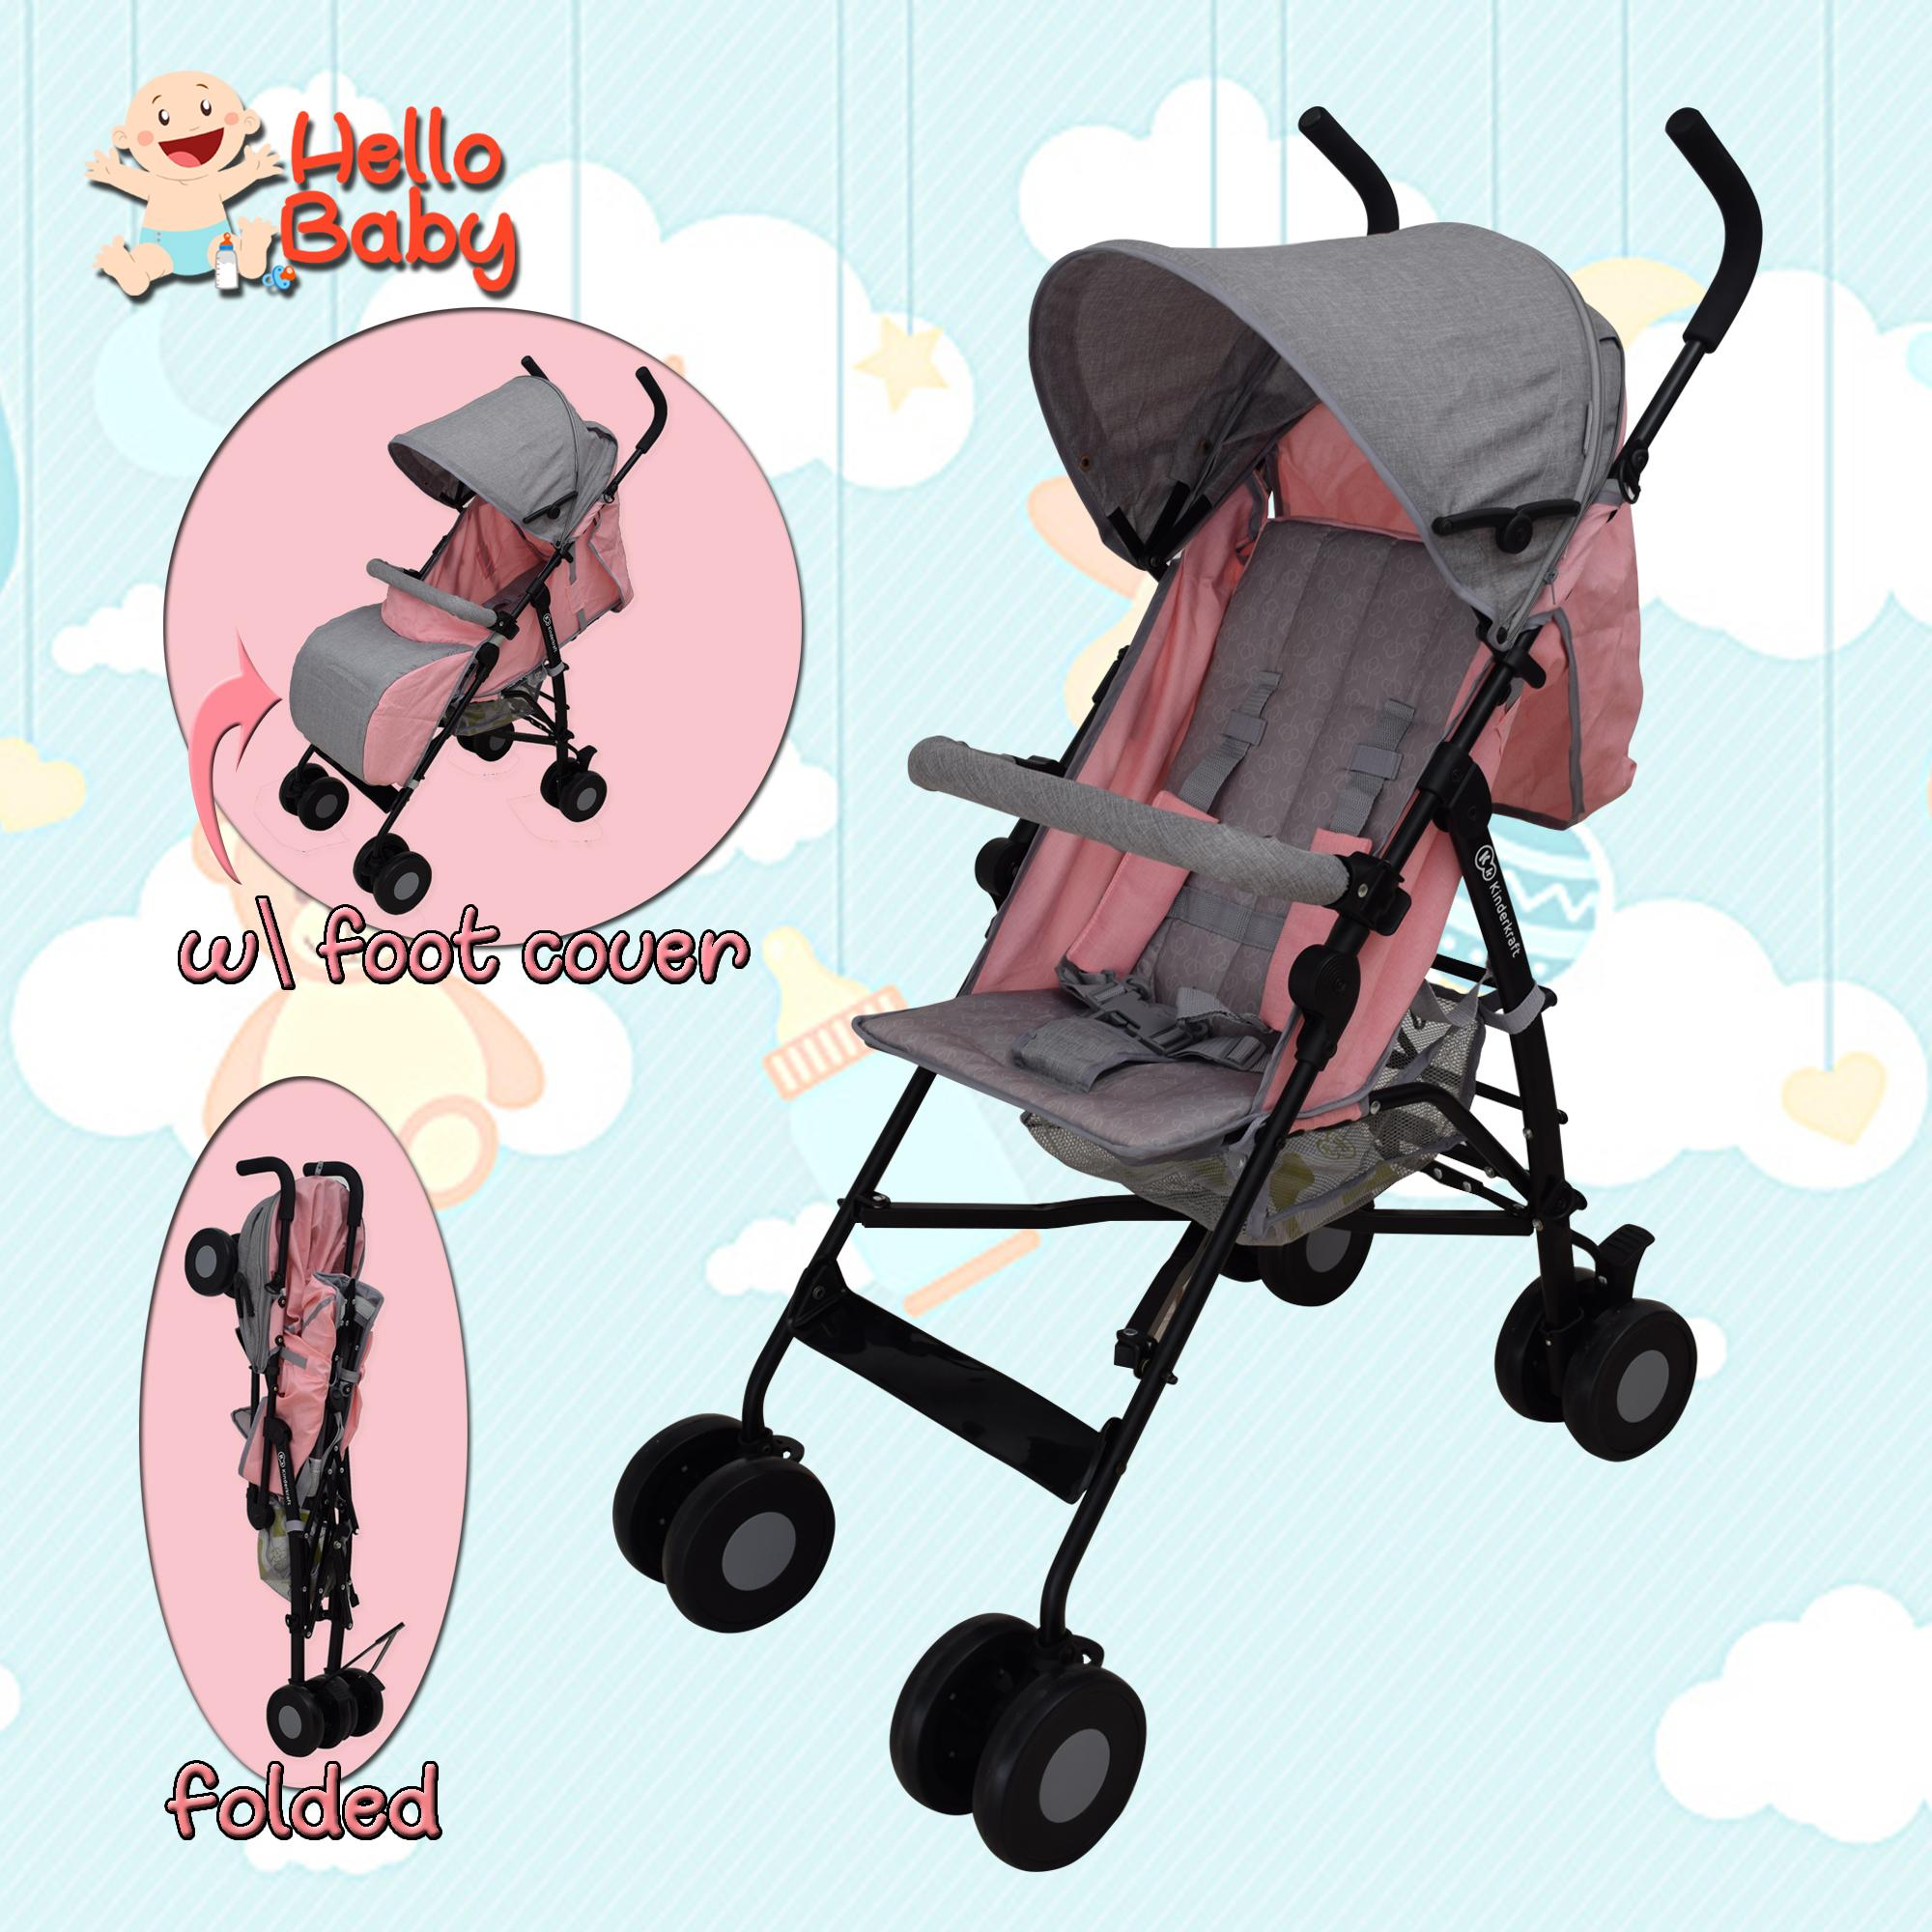 Hello Baby 508/2 Kinderkraft Baby Stroller Portable Comfortable Folding Infant Umbrella Stroller By Hello Baby.